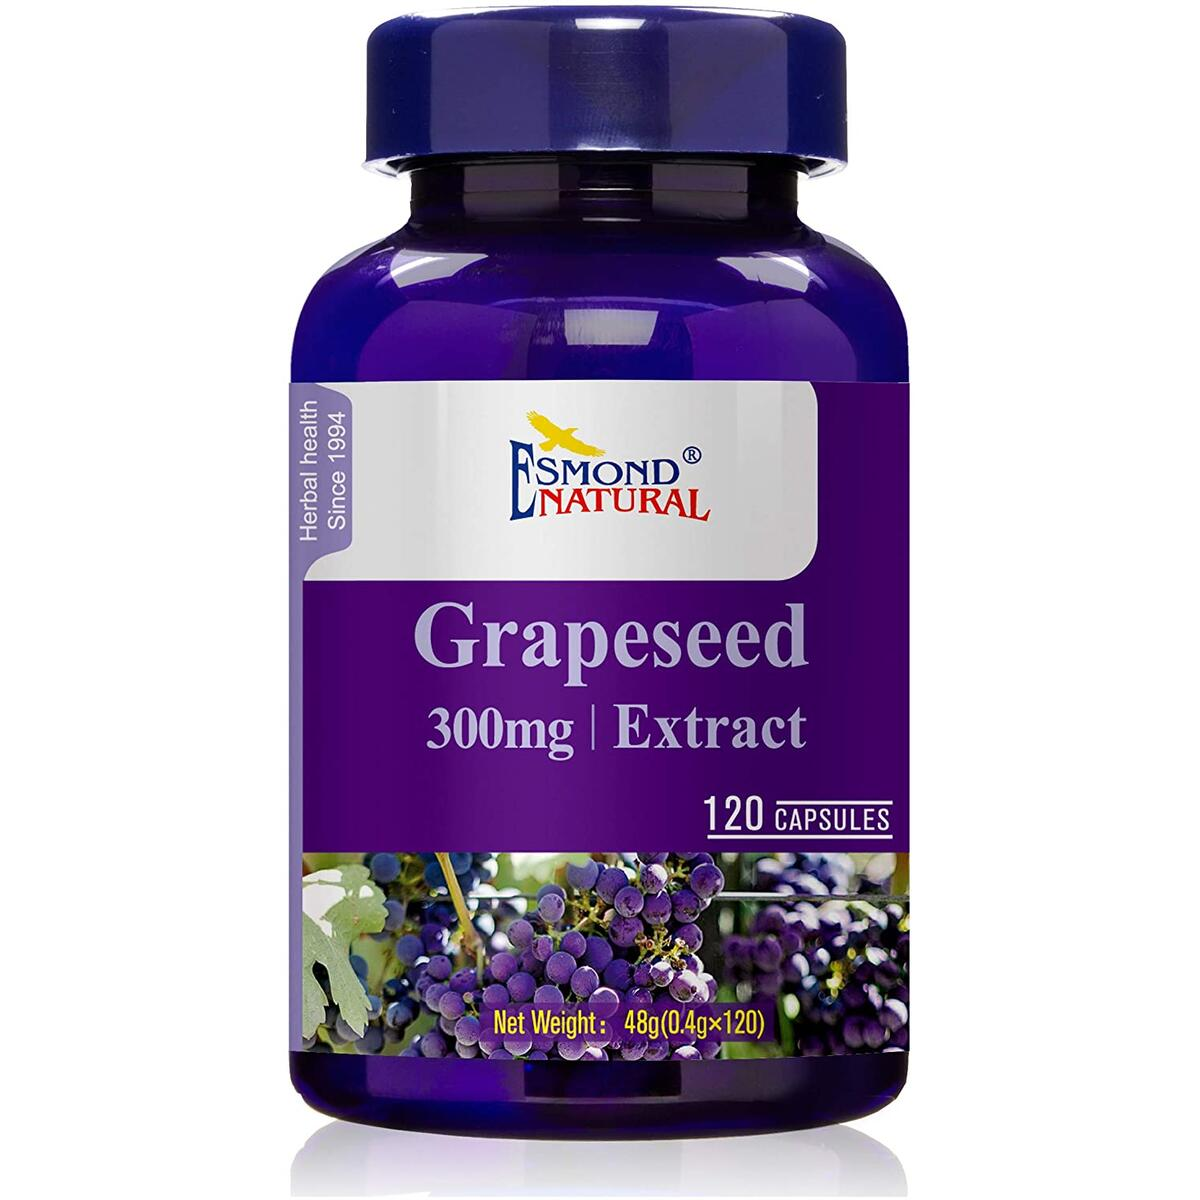 (5 Count, 25% Off) Esmond Natural: Grapeseed Extract (Helps Maintain Antioxidant Health), GMP, Natural Product Assn Certified, Made in USA-300mg, 600 Capsules